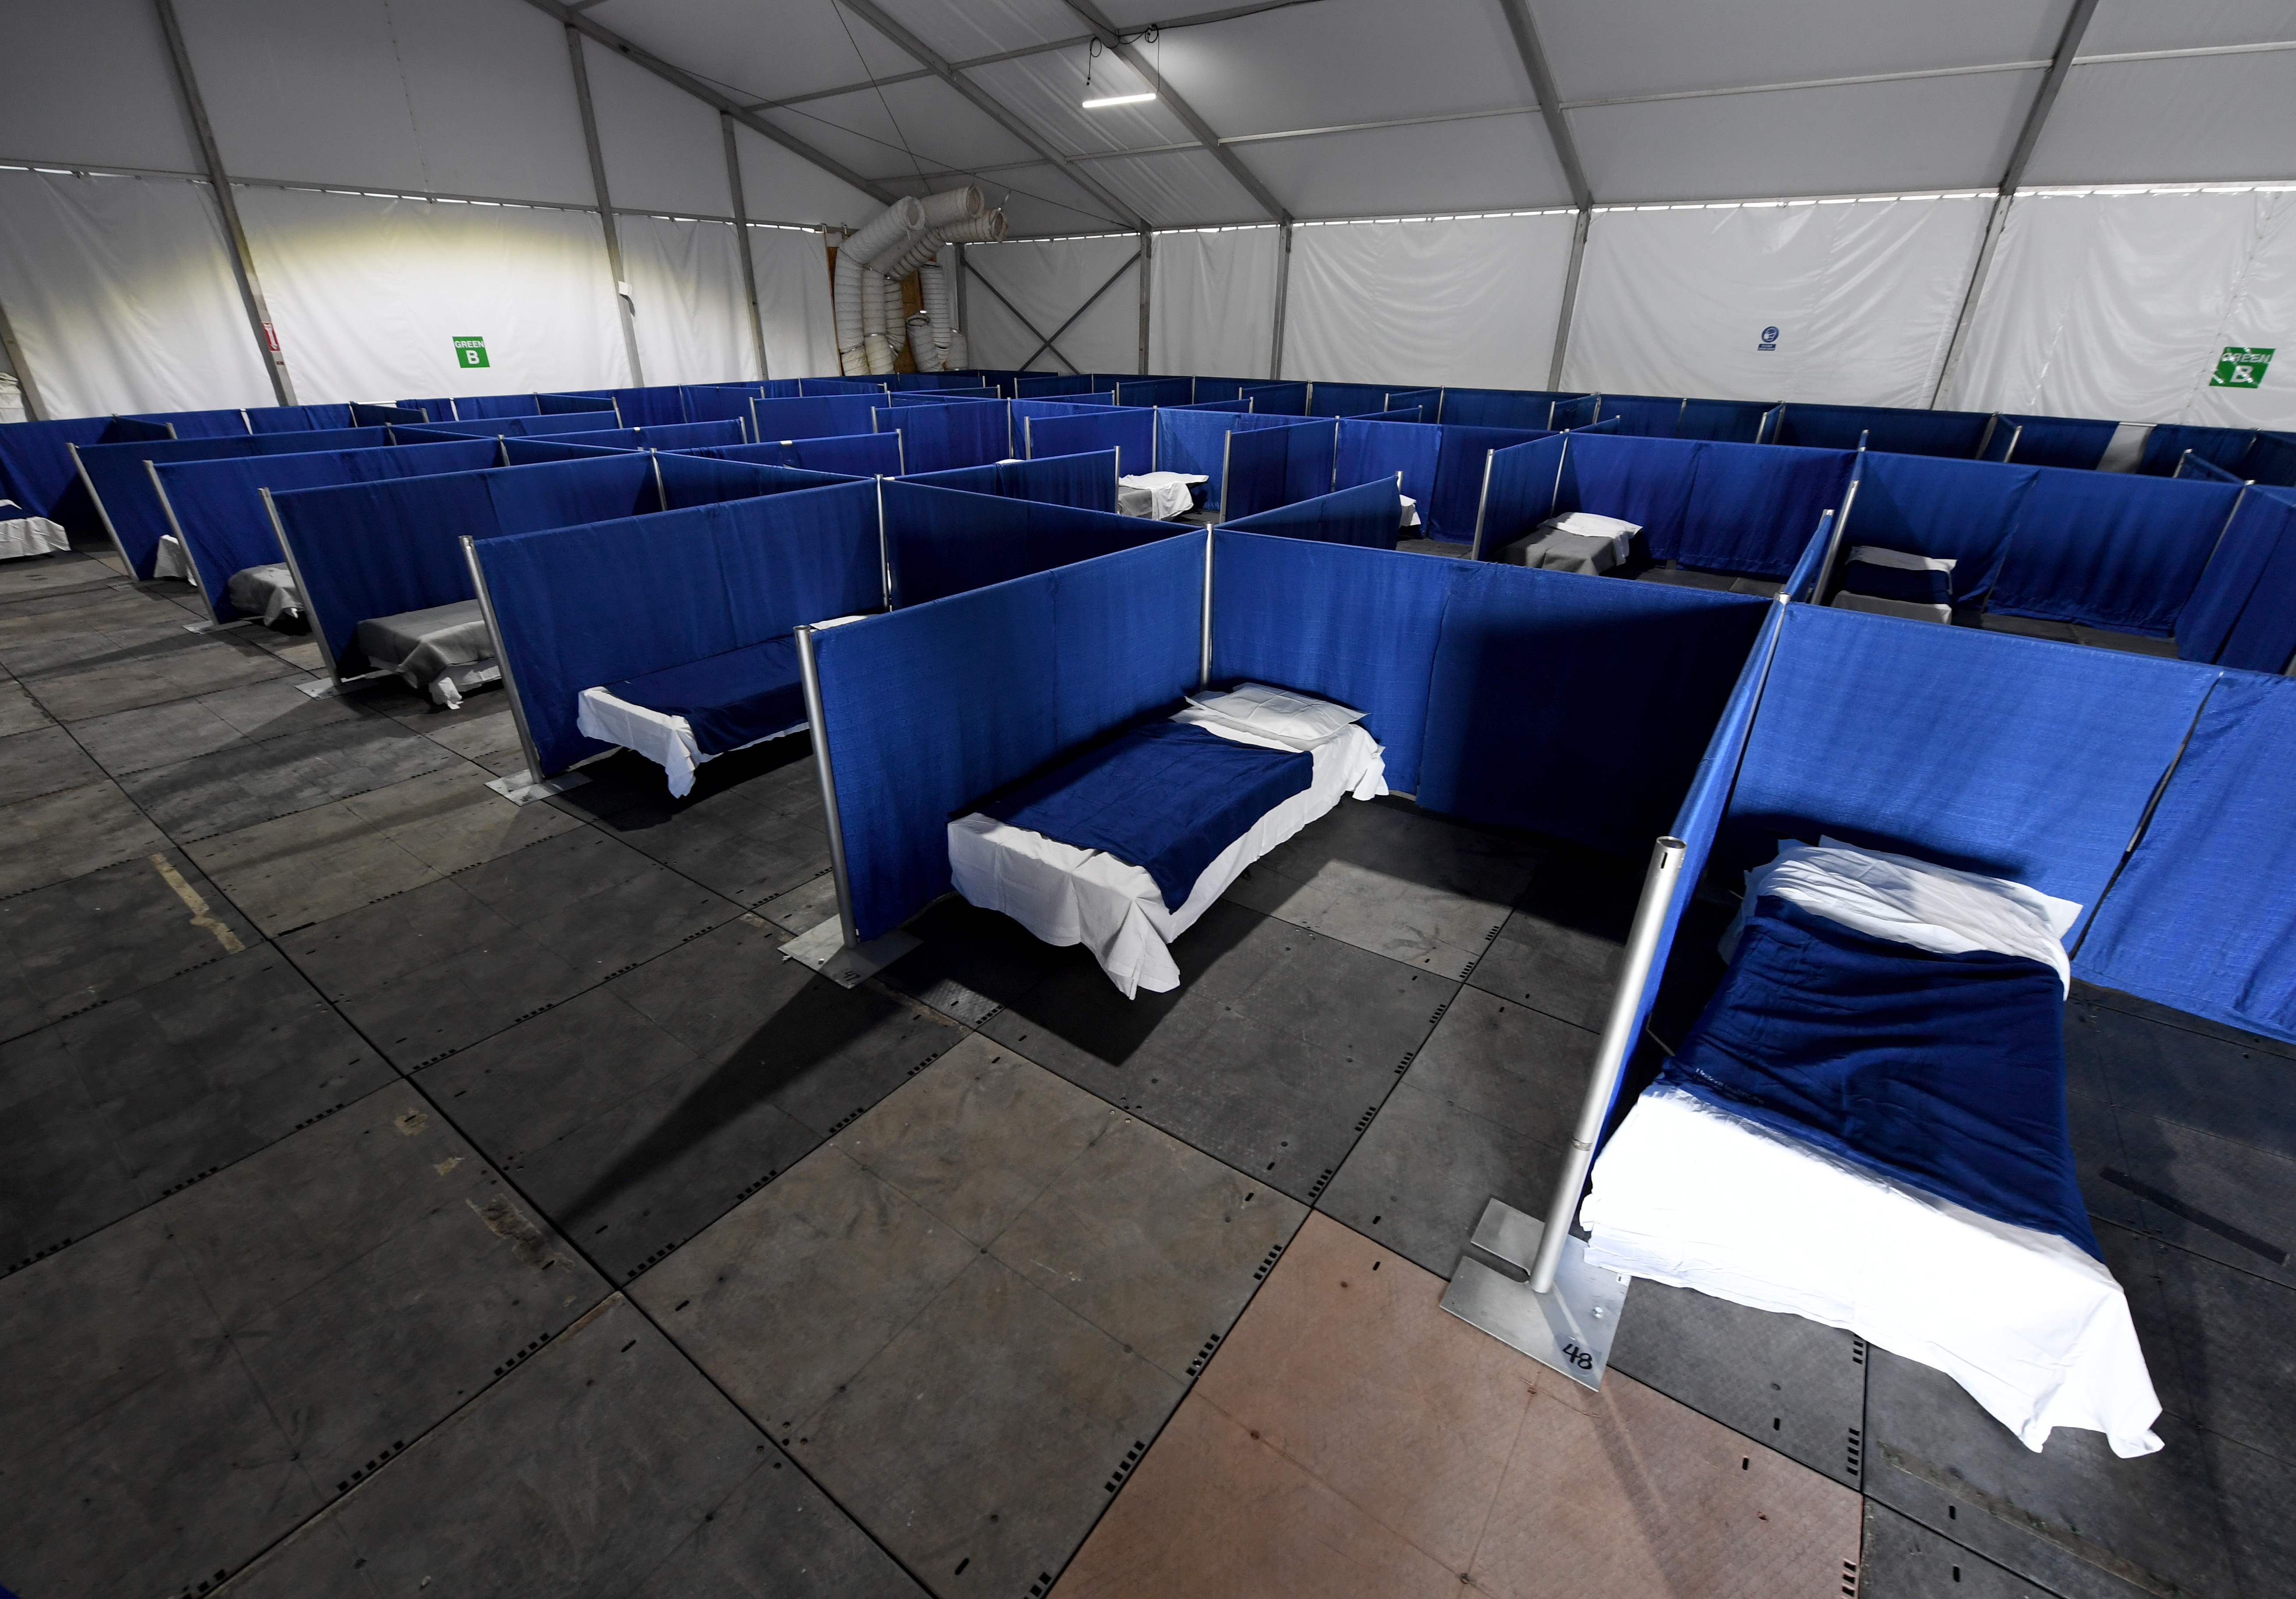 Cots are set up in a tent for homeless people who have nowhere to self-isolate in Las Vegas, Nevada, on April 13, 2020. The center will have separate areas for those requiring quarantine due to COVID-19, those with symptoms who have tested positive, and those who have tested positive but have no symptoms.